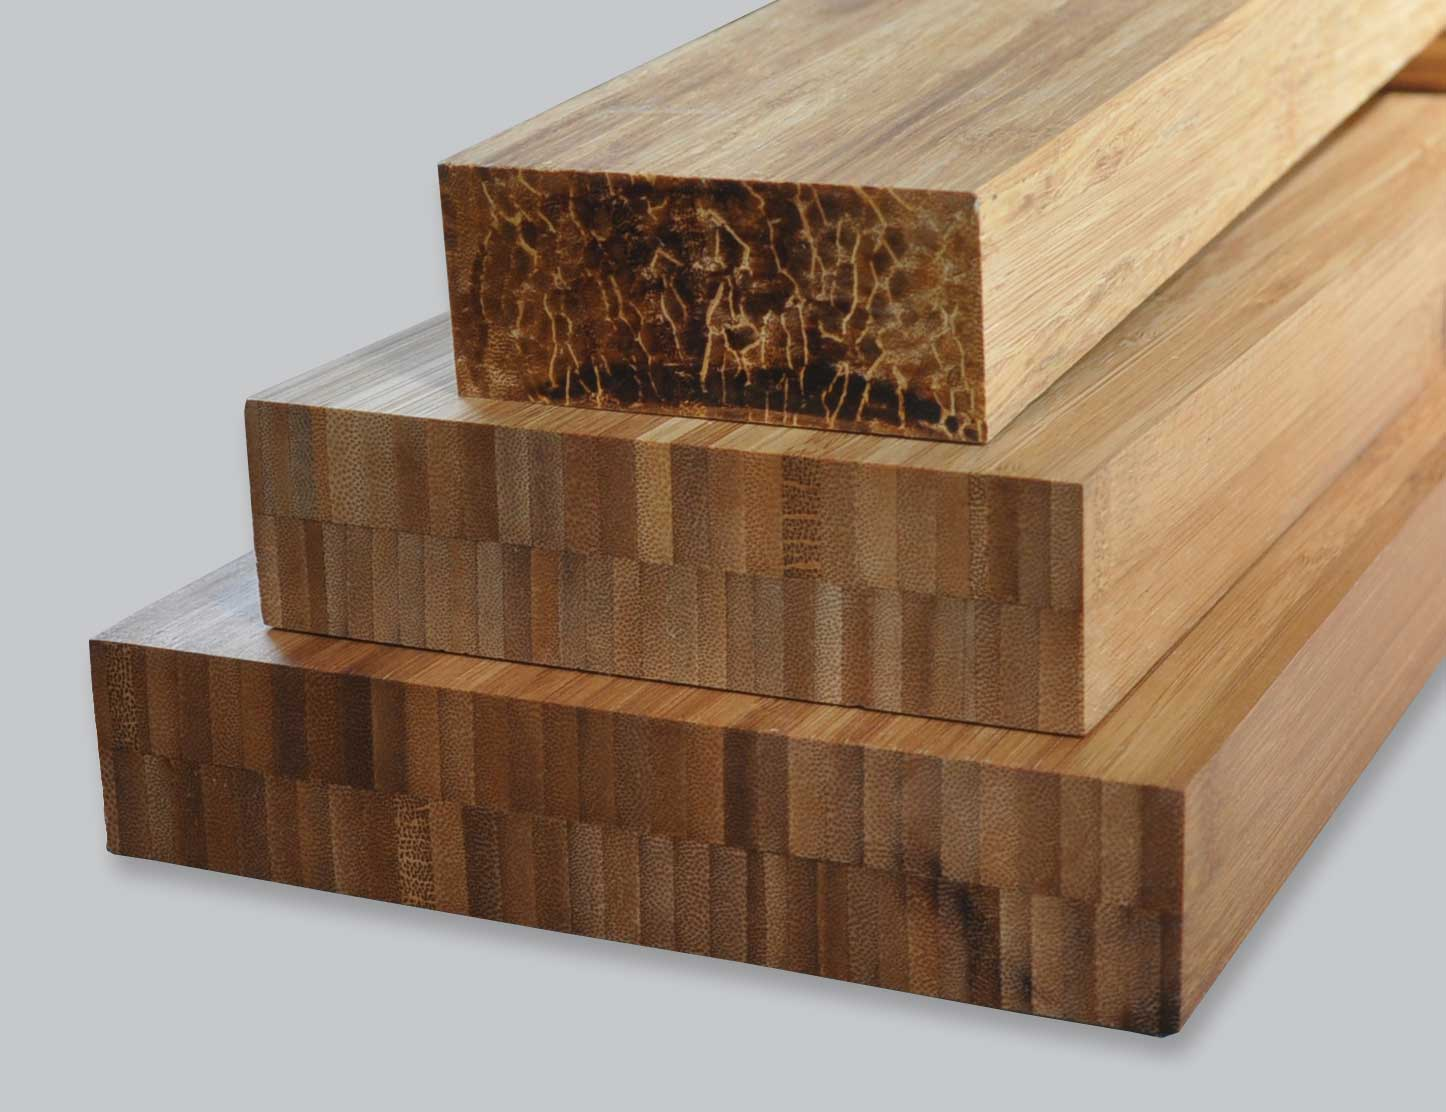 Dimensional Lumber Sizes